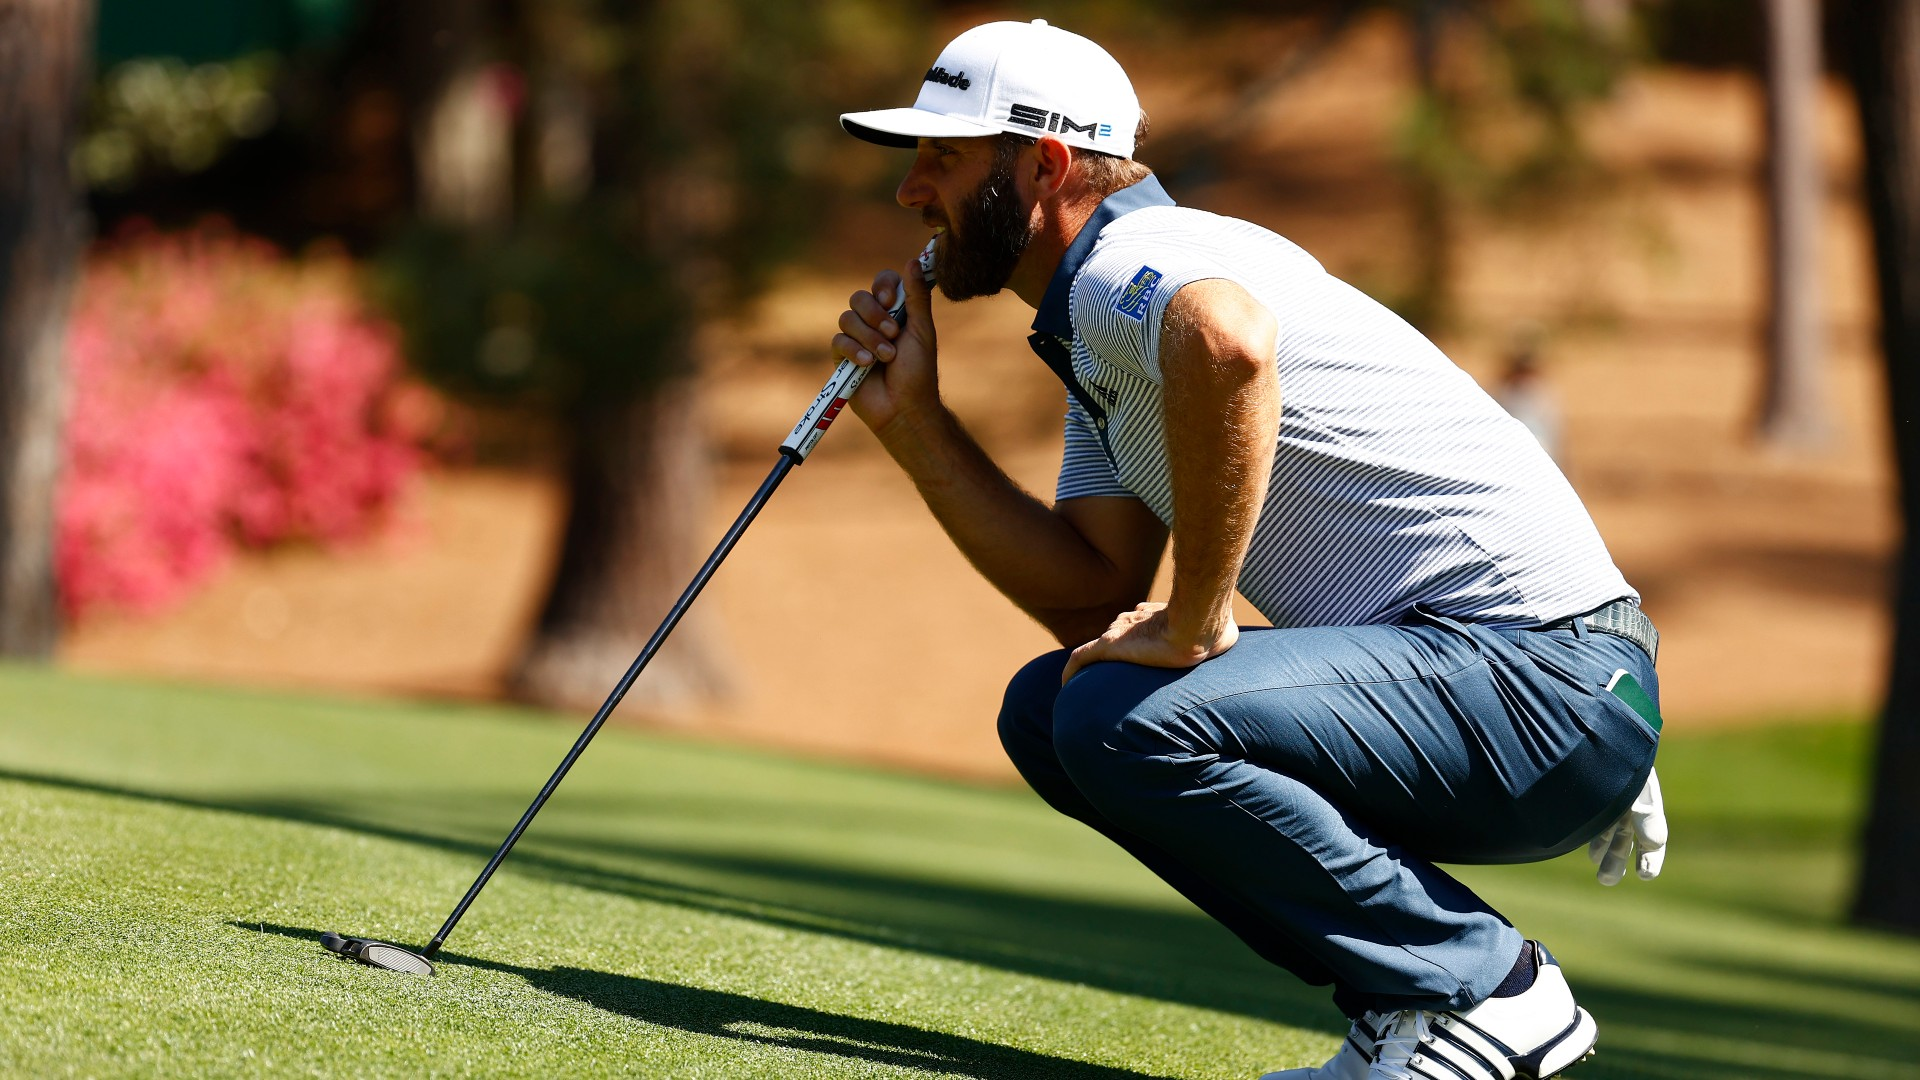 Dustin Johnson misses cut at Masters; 2020 champion blames putting woes